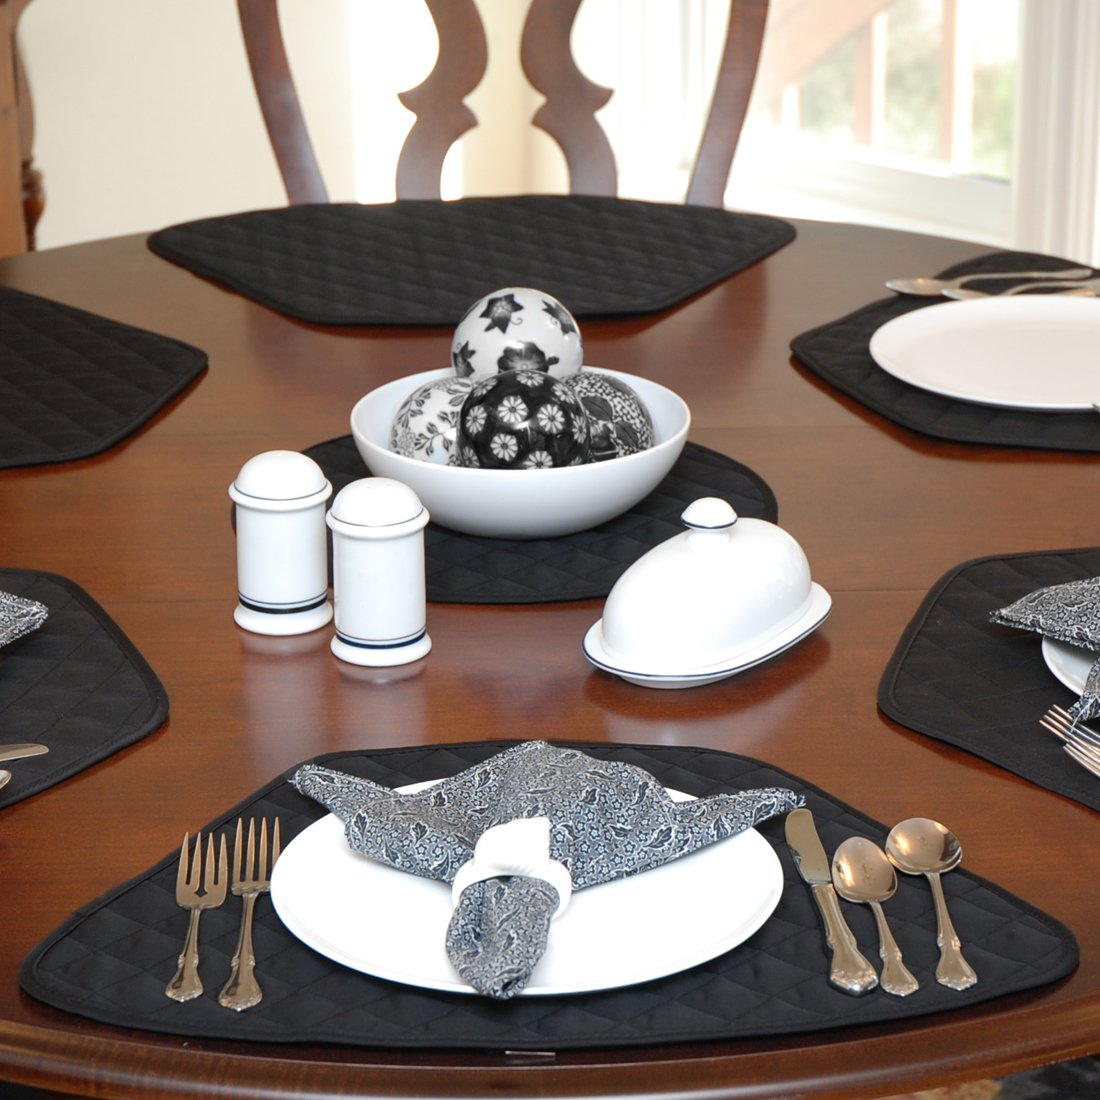 Amazon.com: Set Of 2 Black Quilted Wedge Shaped Placemats For Round Tables:  Home U0026 Kitchen